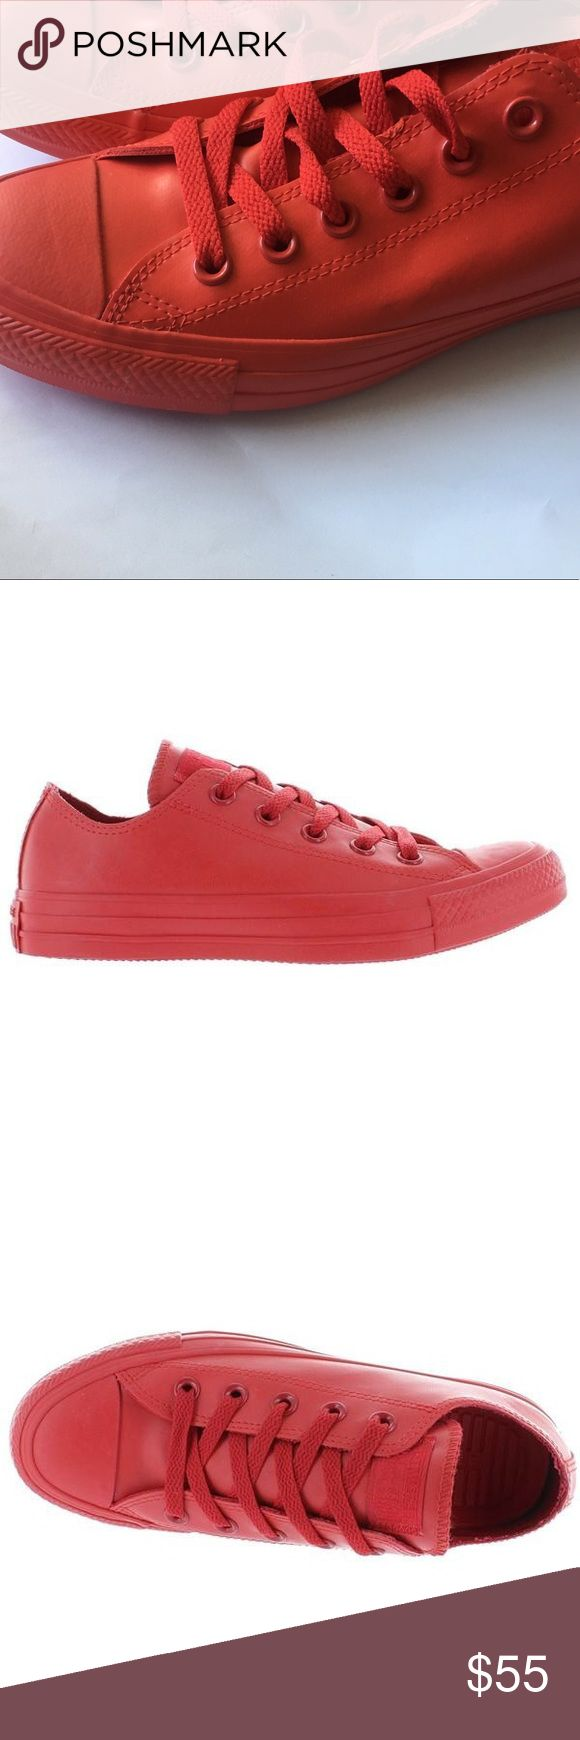 Red Leather Converse All Red Leather Converse  Used stock photos because camera photos don't show true color  Only worn 1x  Super cute, VERY RARE  SIZE 6 in men's but fits me size 9 (women's) Converse Shoes Sneakers